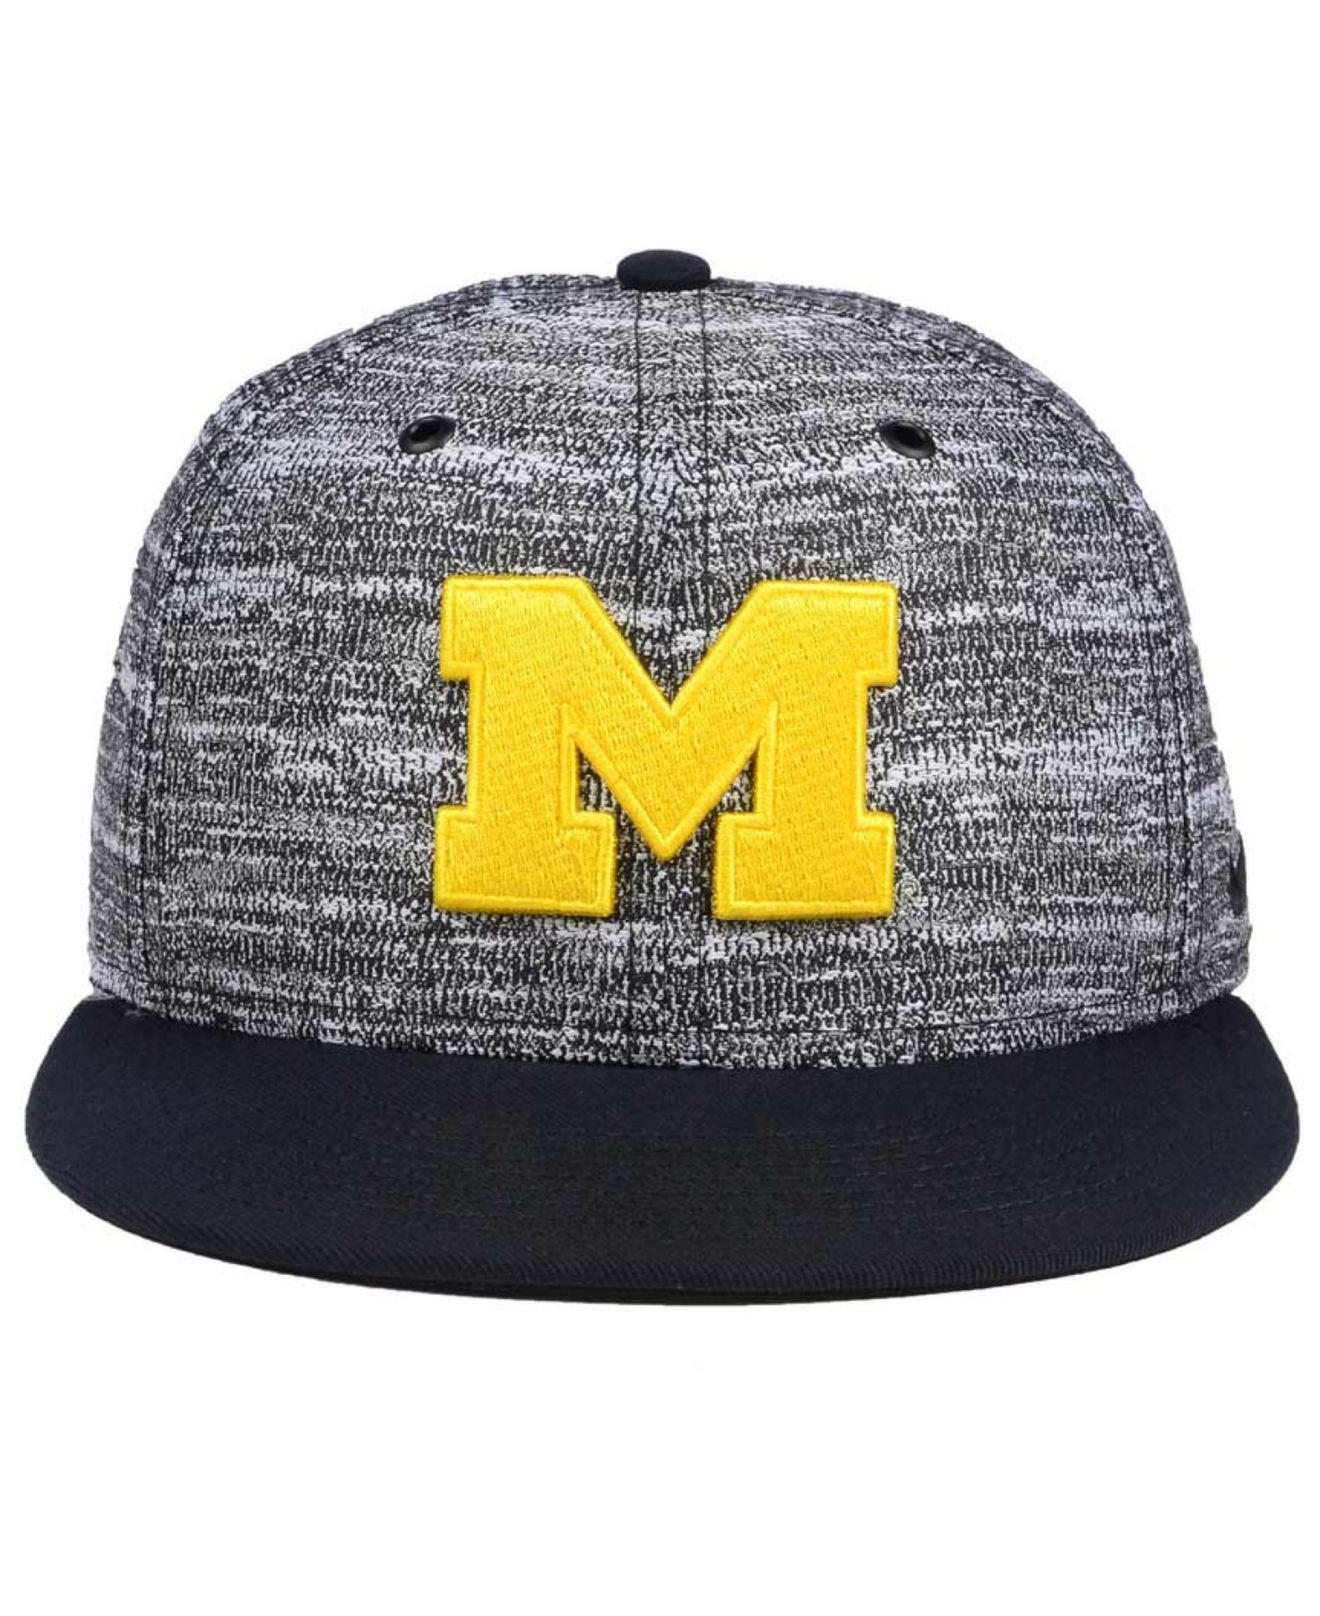 sale retailer 6e33c 0dbba Lyst - Nike Col True Heathered Snapback Cap in Gray for Men